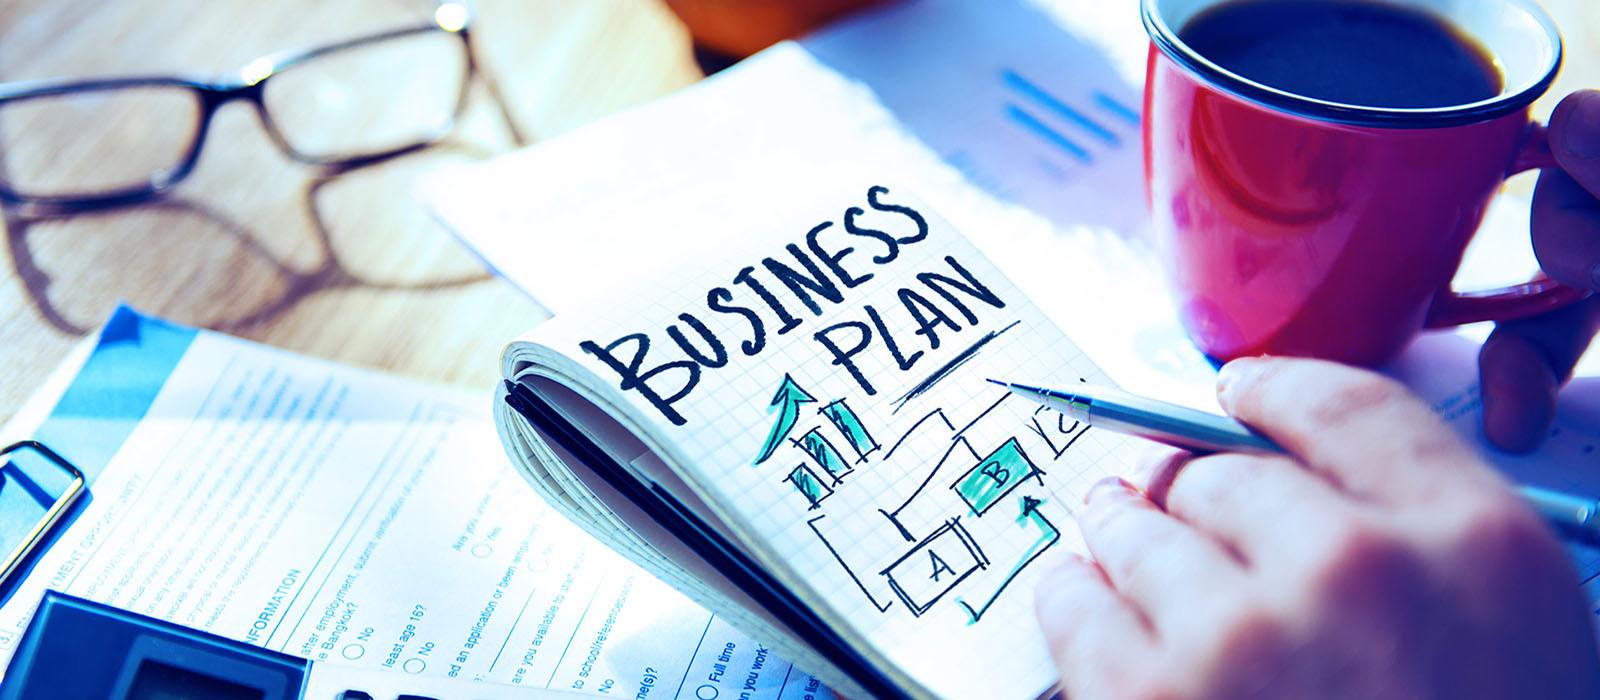 blocco-notes-su-scrivania-da-ufficio-con-business-plan